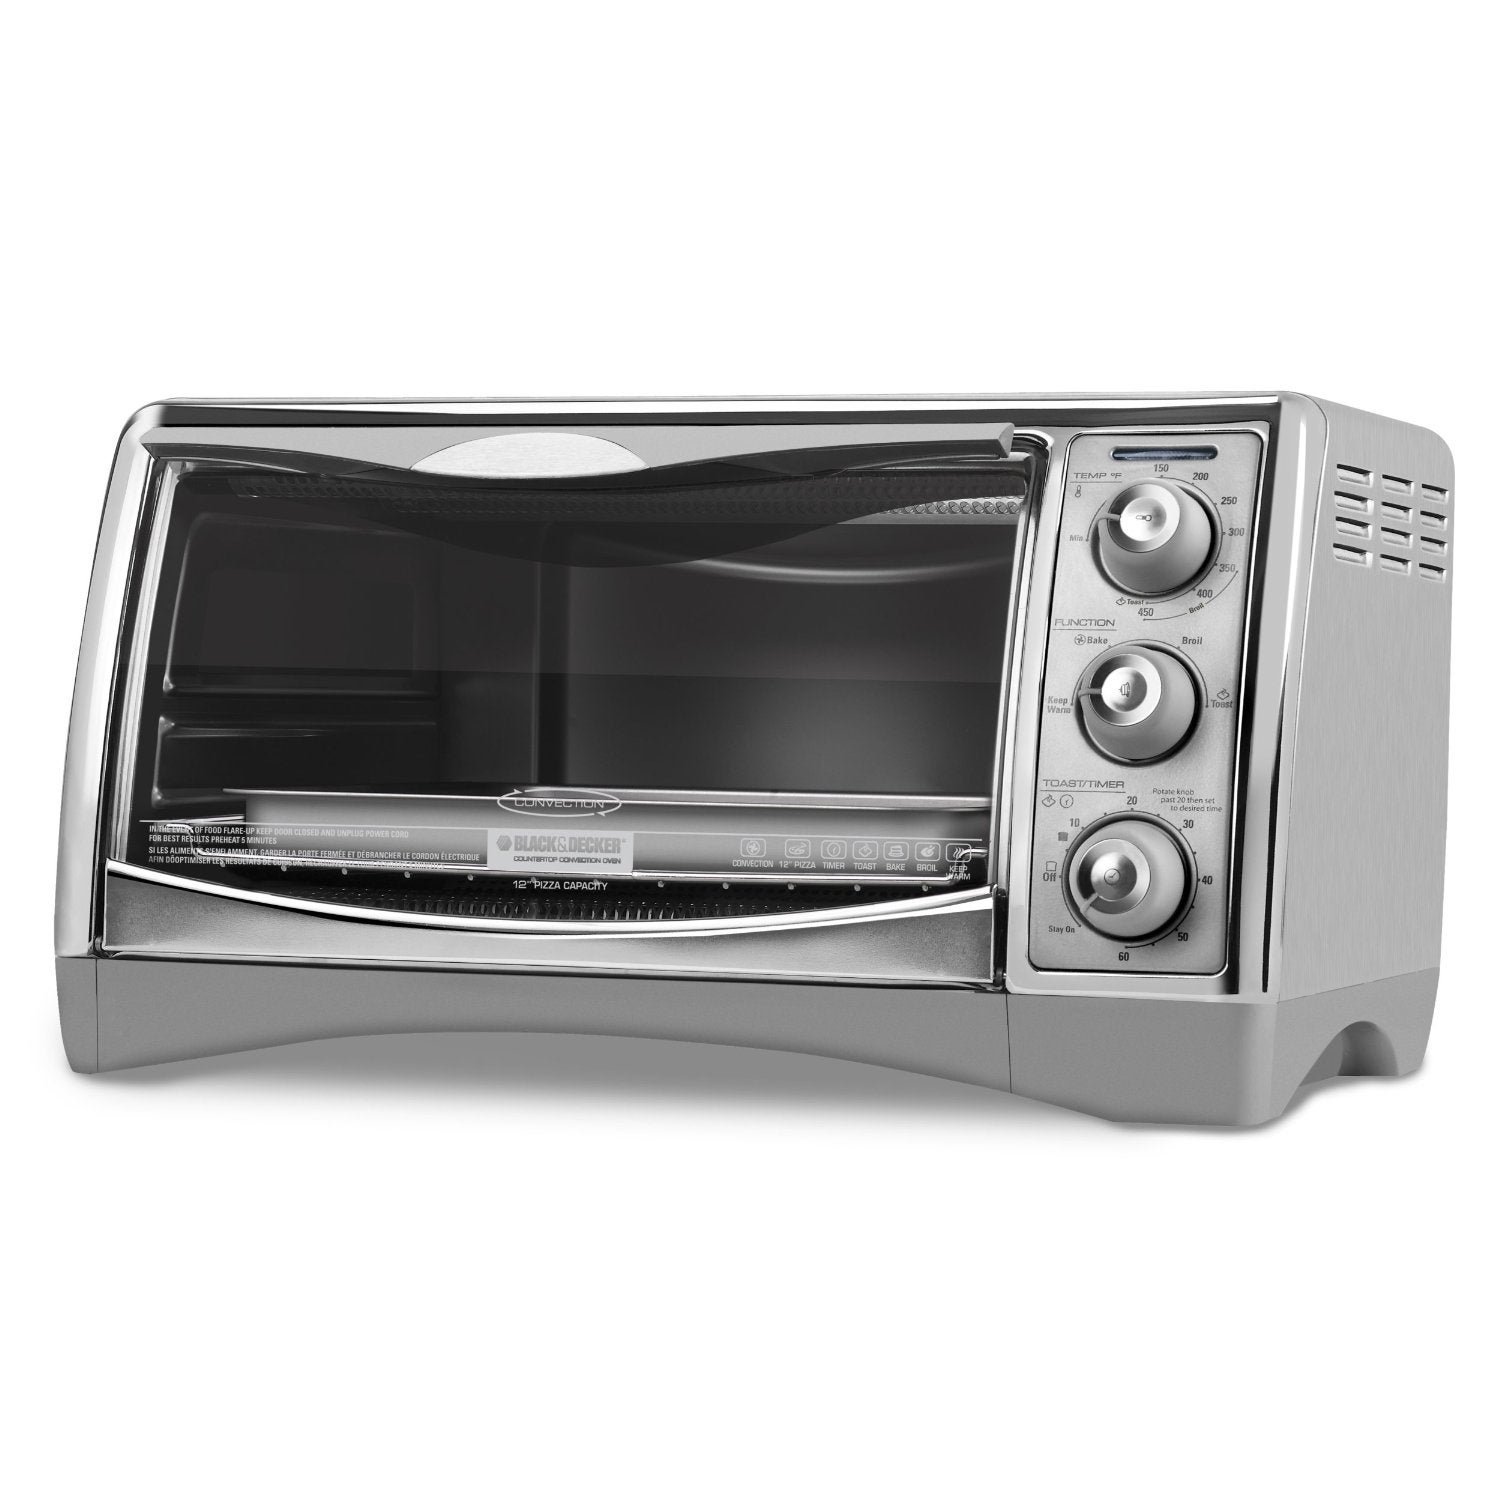 Countertop Convection Oven Toaster : Black & Decker CTO4500S 6-Slice CounterTop Convection Oven with Pizza ...